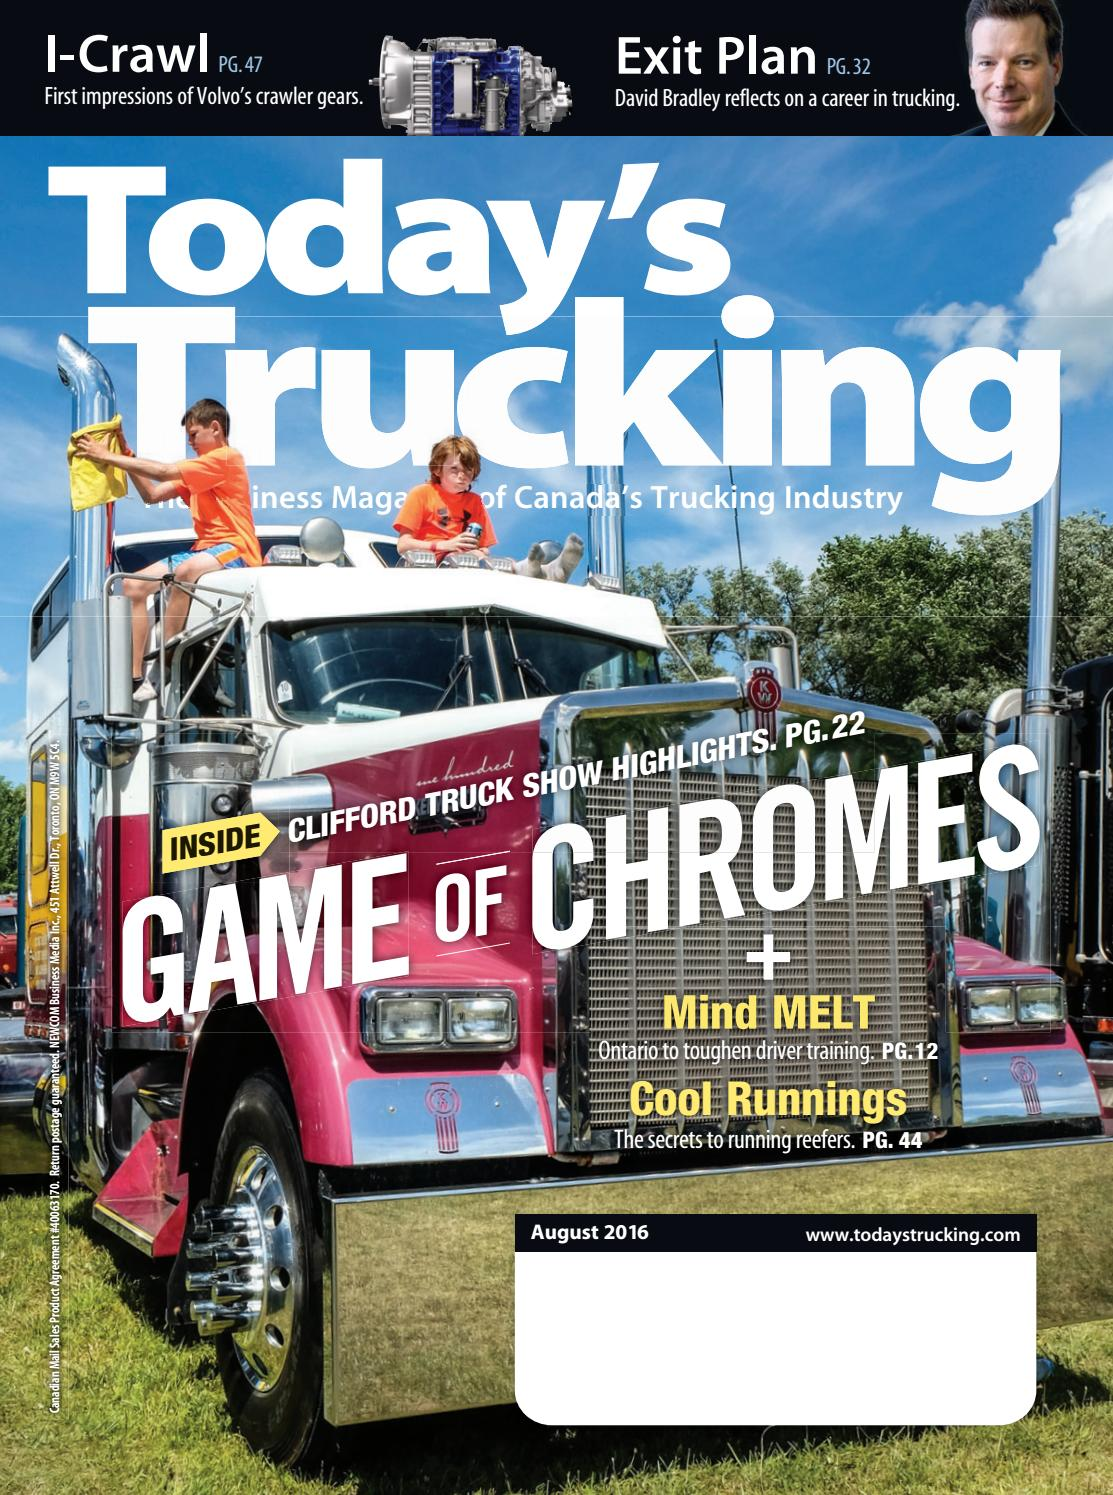 Today's trucking august 2016 by Augusto Dantas - issuu